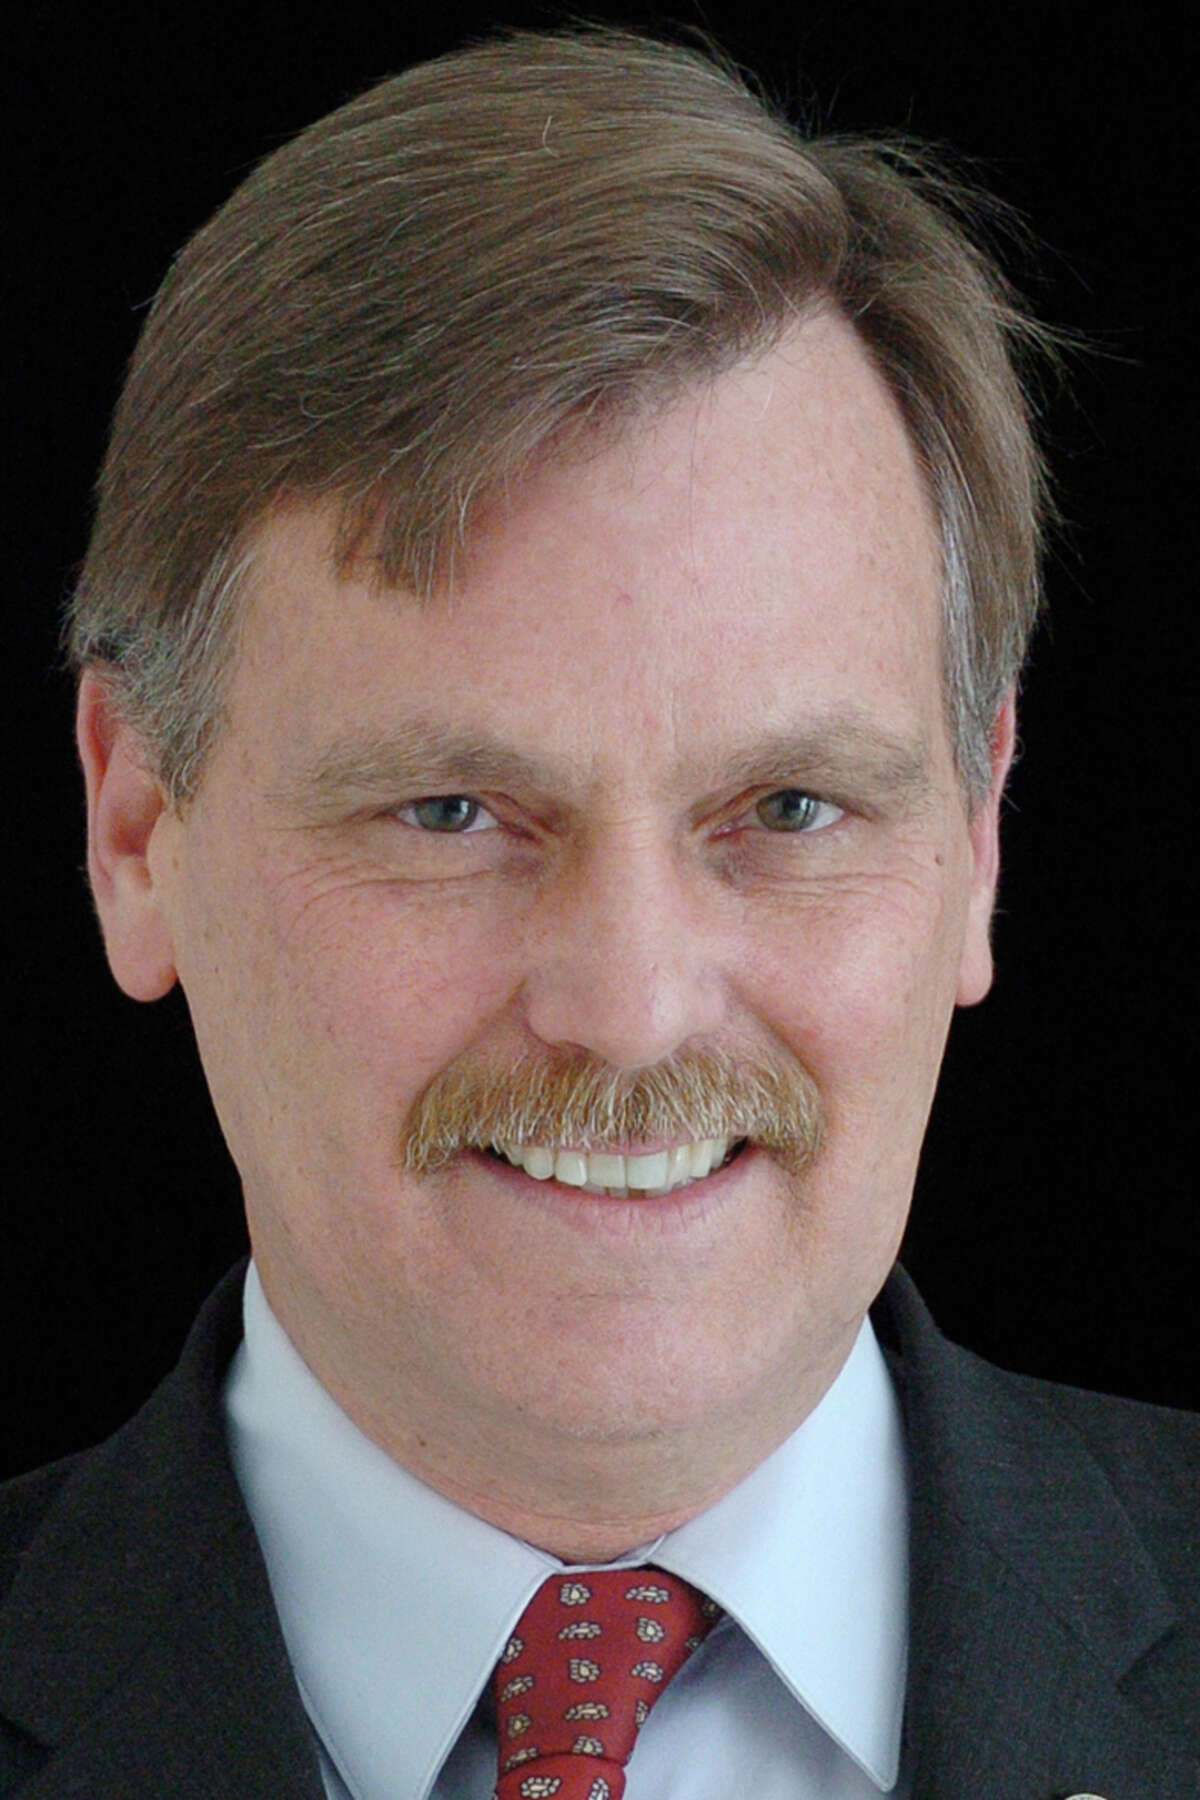 State Rep. John F. Hennessy, D-Bridgeport. Hennessy wants to change a state law that has allowed Bridgeport's elected officials to ignore a charter provision preventing them from being employed by the city, and governing it as councilmen.